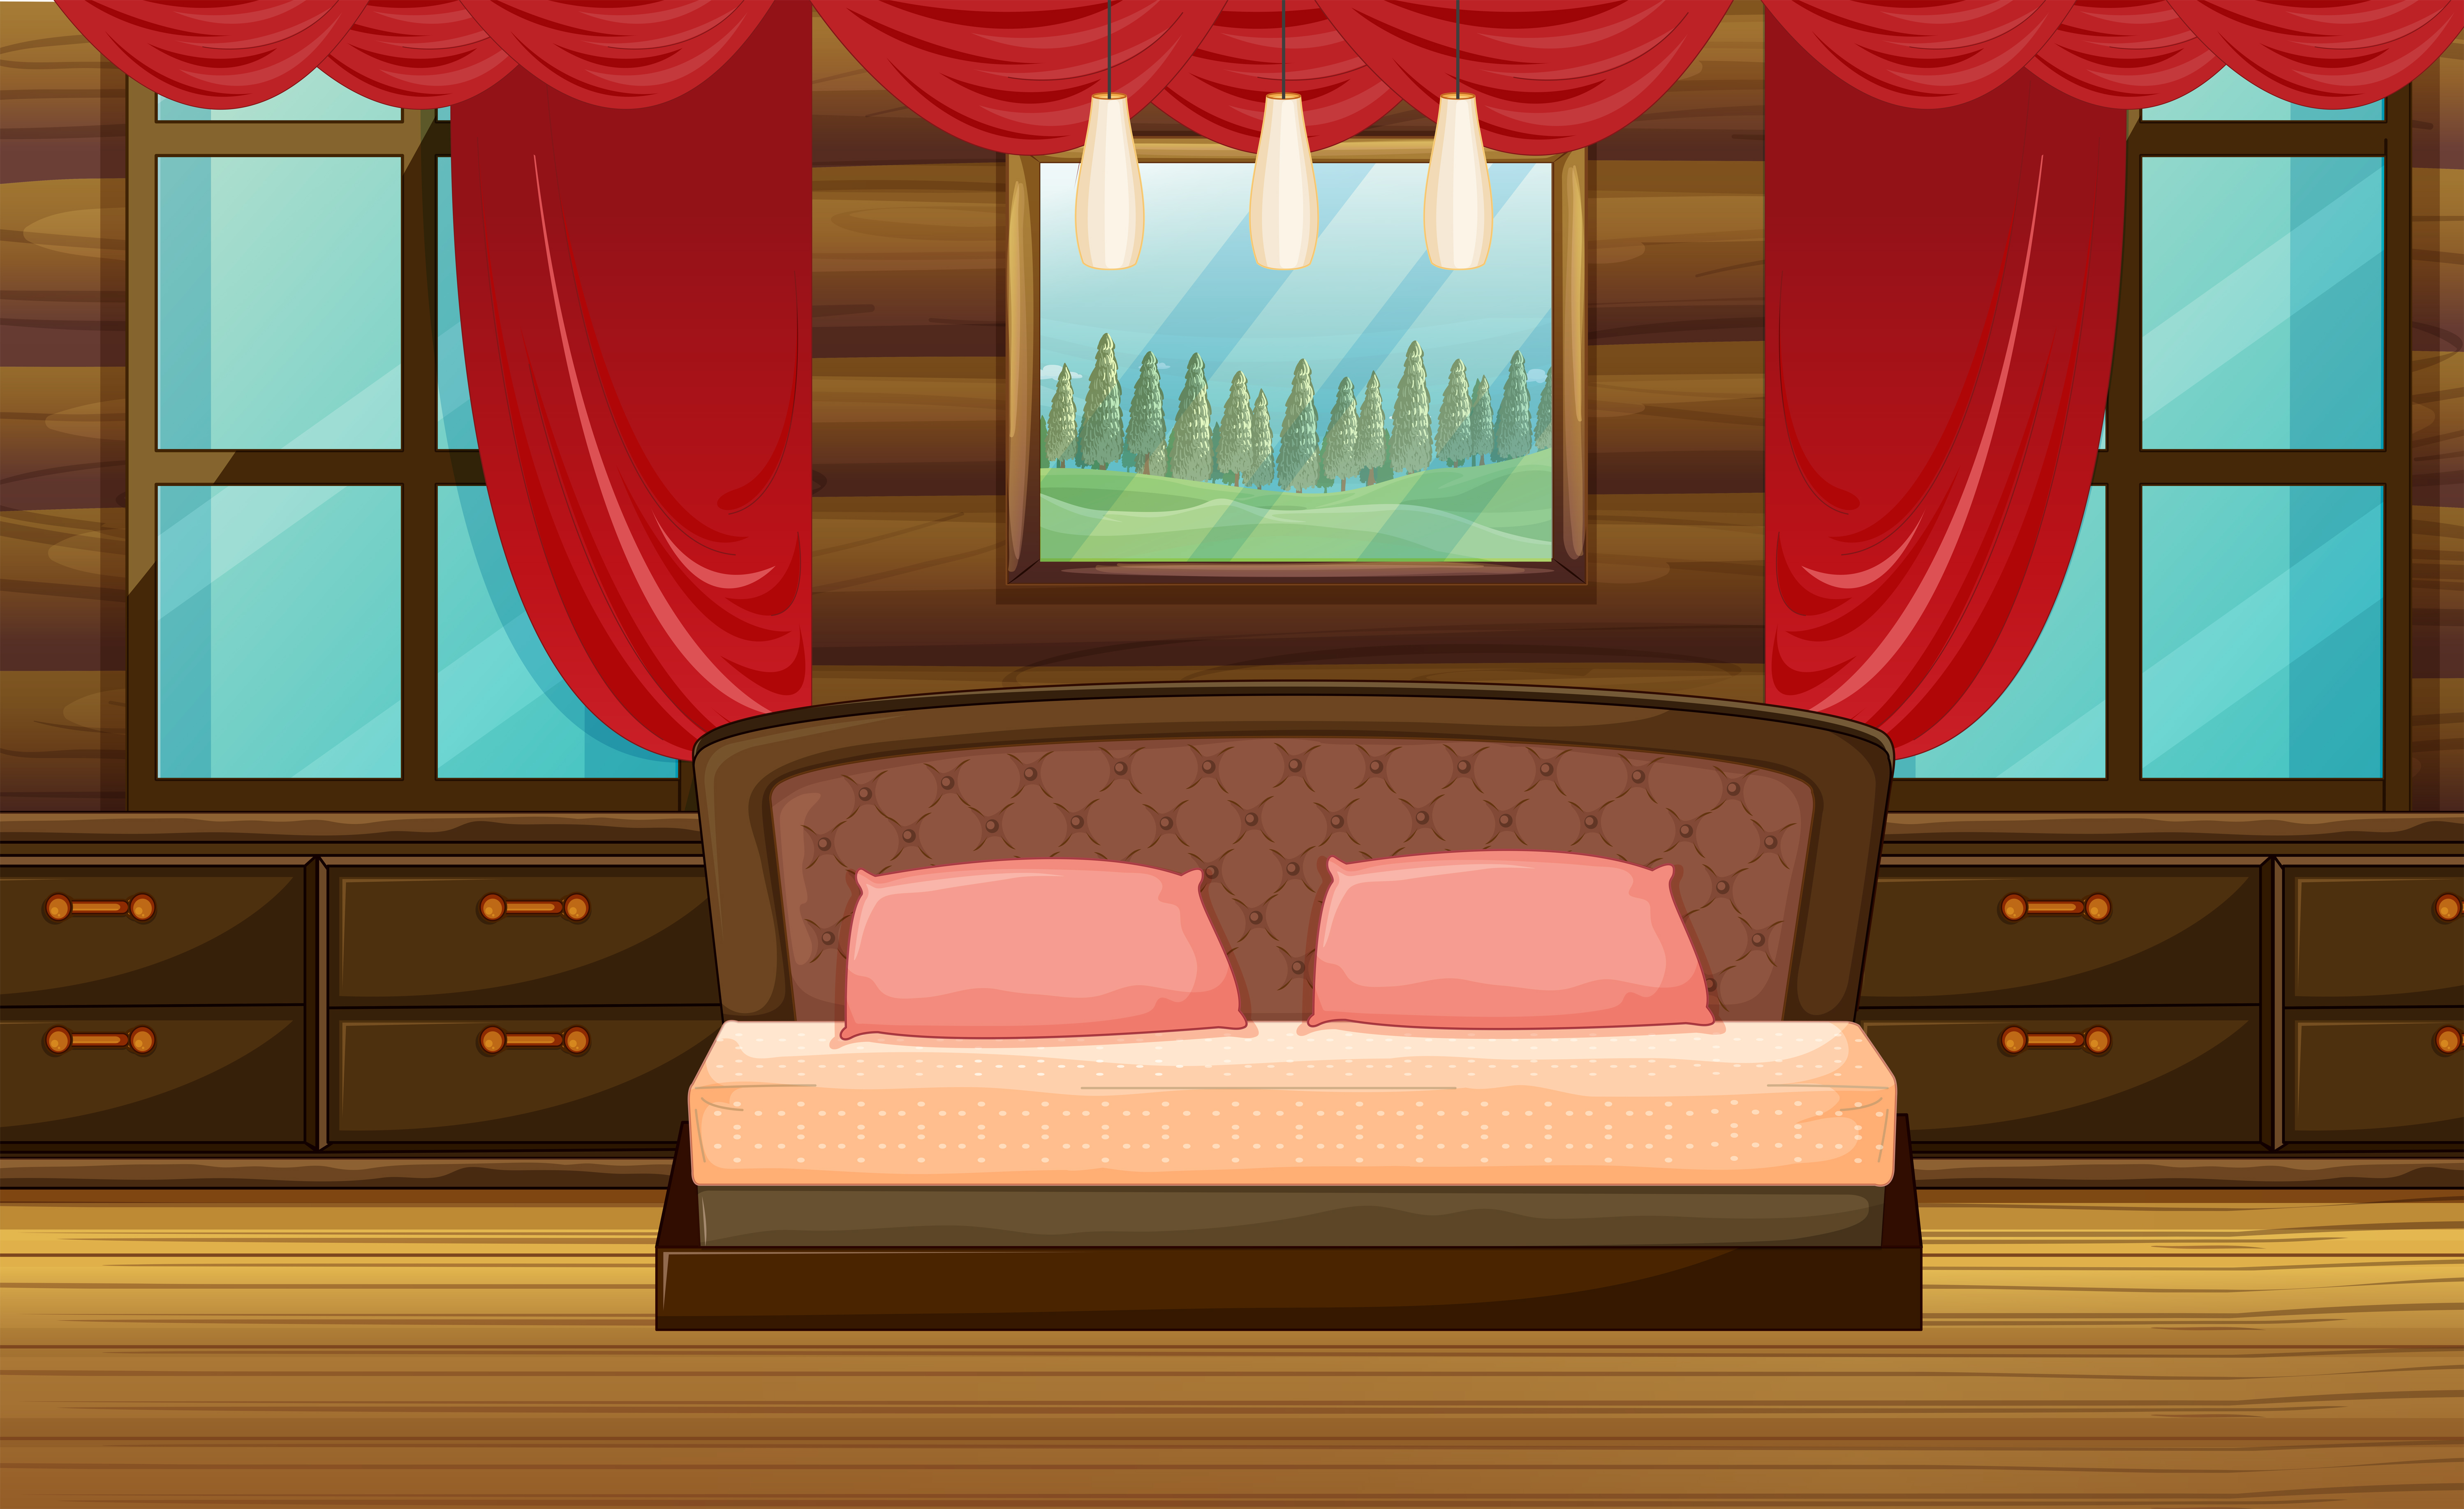 bedroom scene with wooden bed 353760  download free